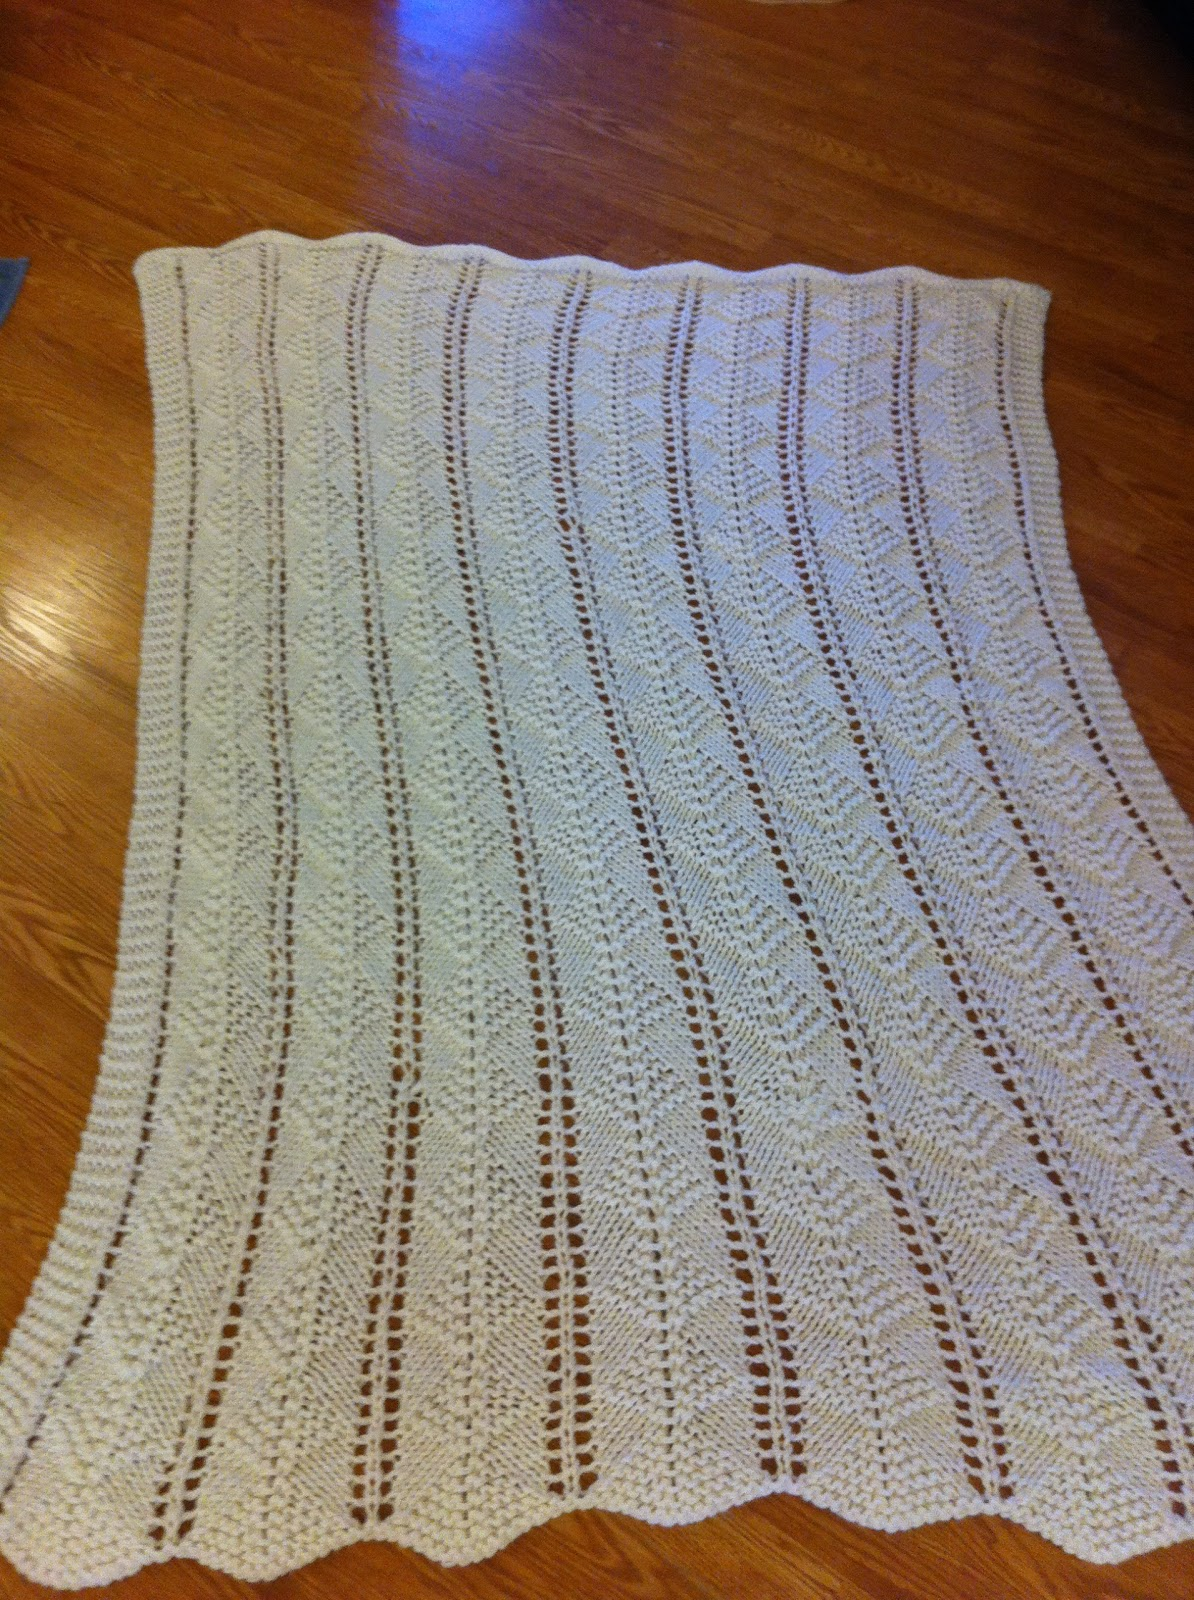 Diamond Afghan Knitting Pattern : Kate Can Help: Knit Afghan - Lacy Garter Stitch Diamonds